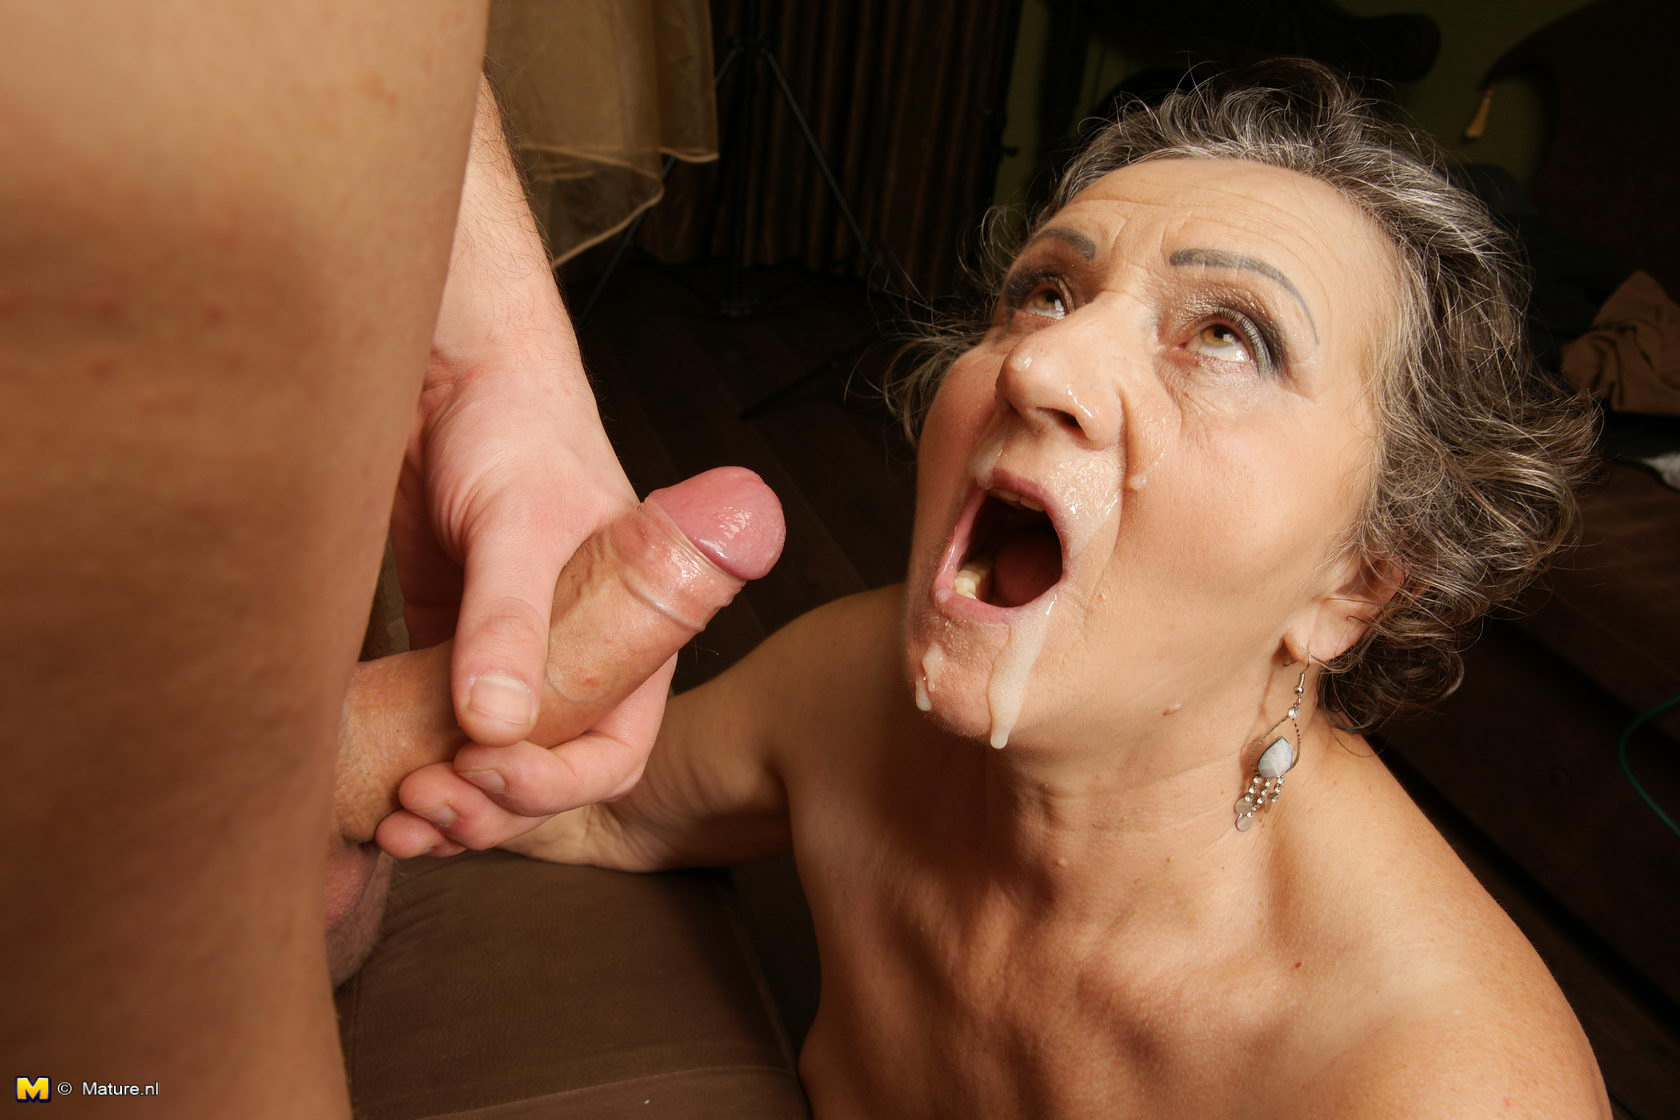 Granny monster dick naked photos